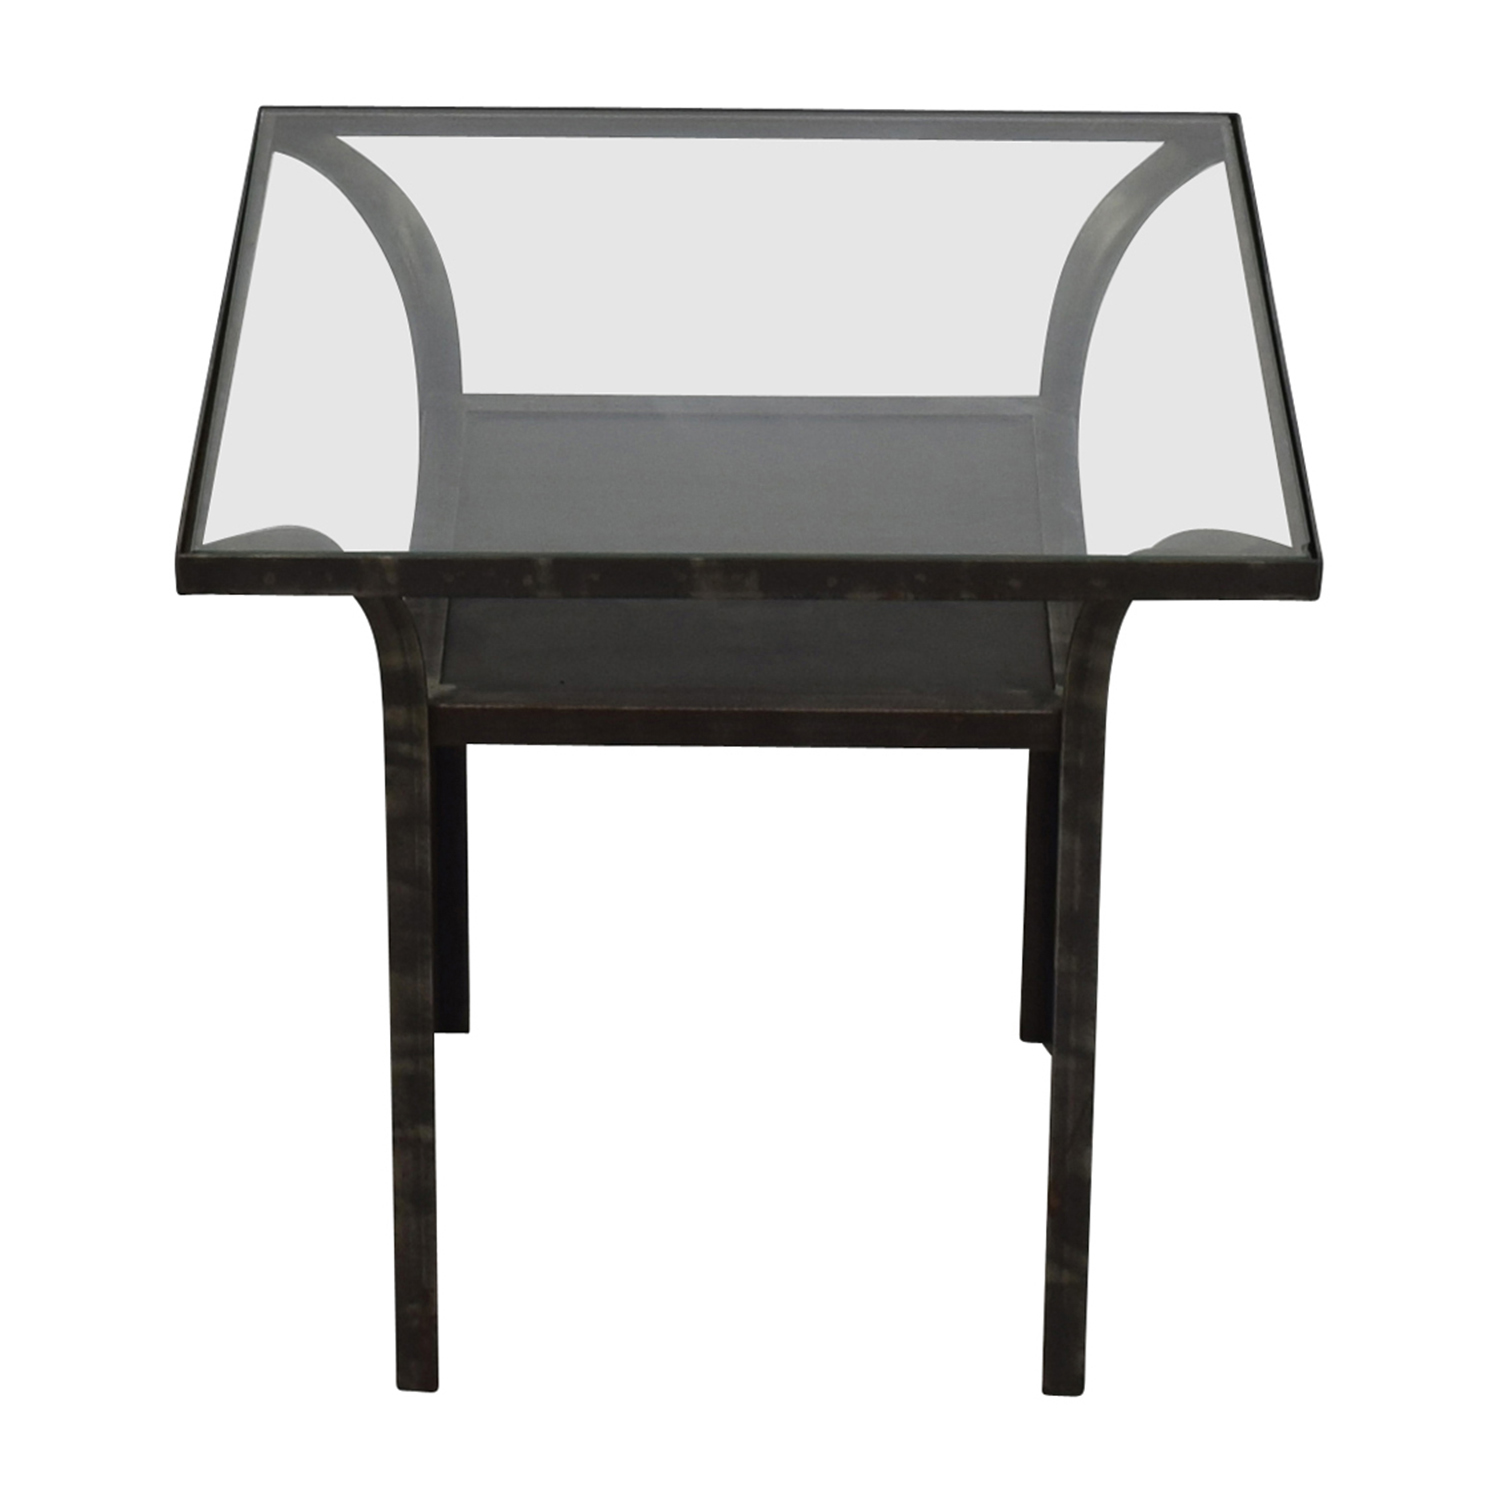 Crate & Barrel Crate & Barrel Glass End Table price